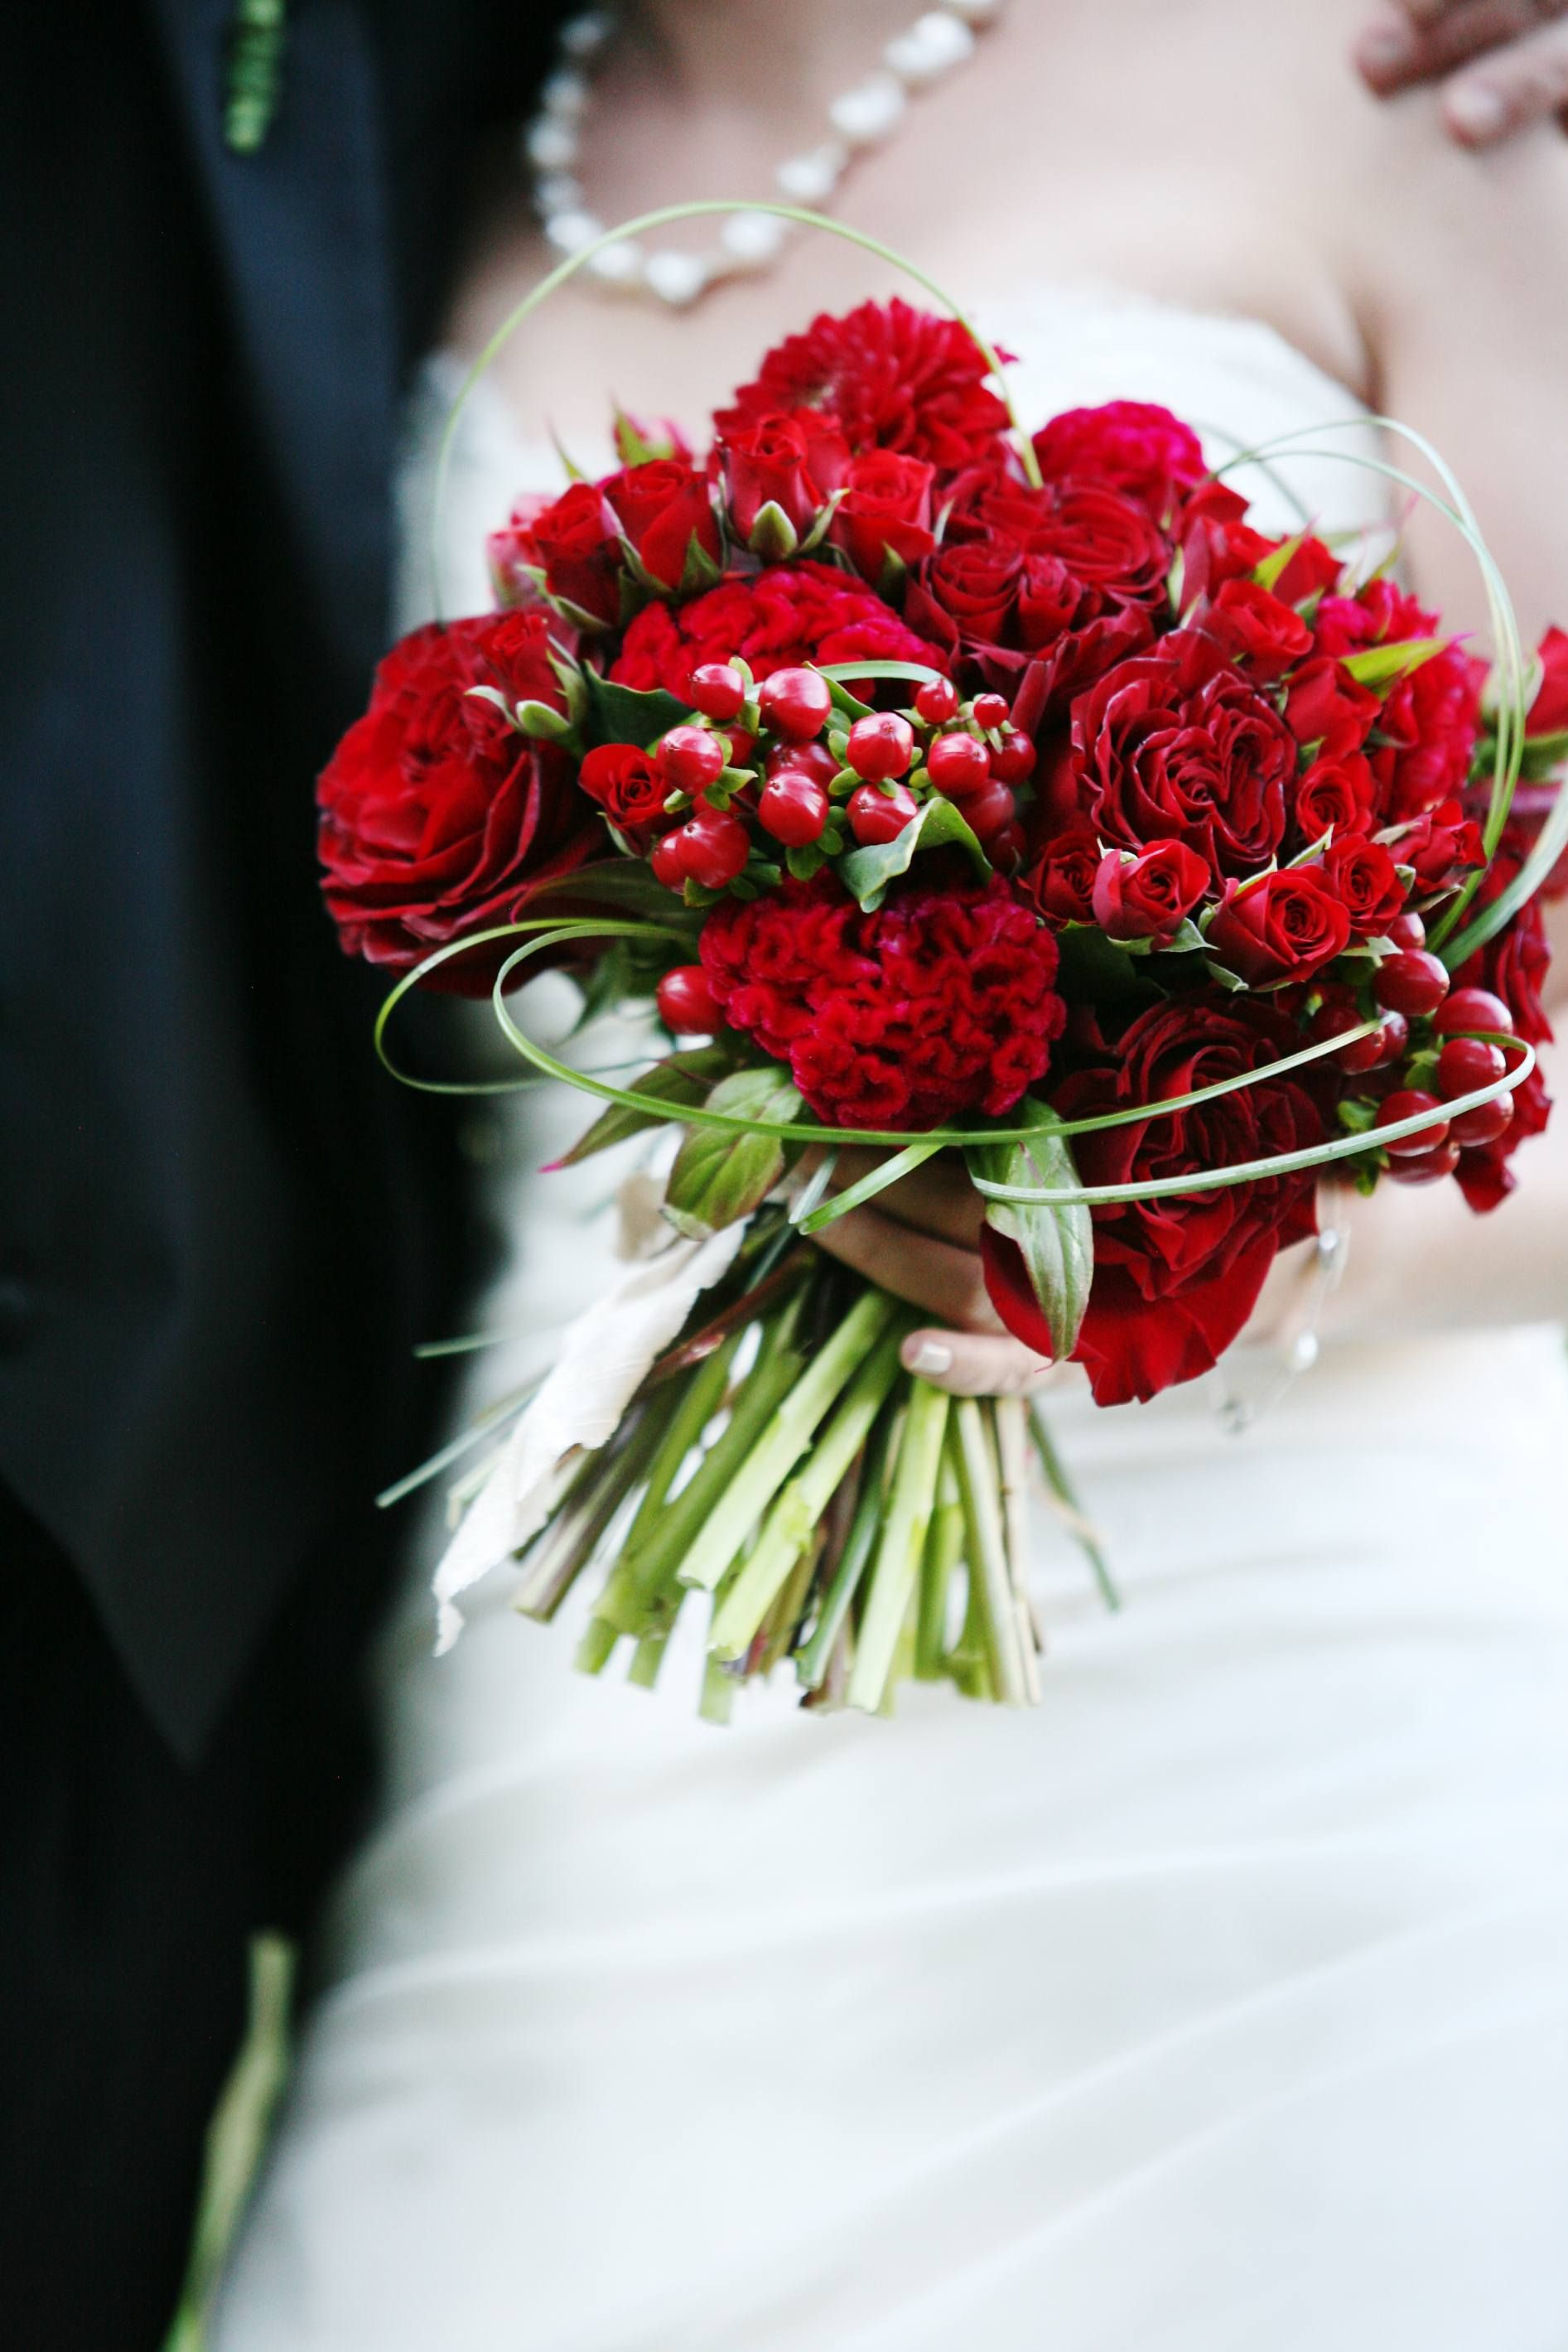 Red Bridal Bouquet. Red garden roses, spray roses, celosia